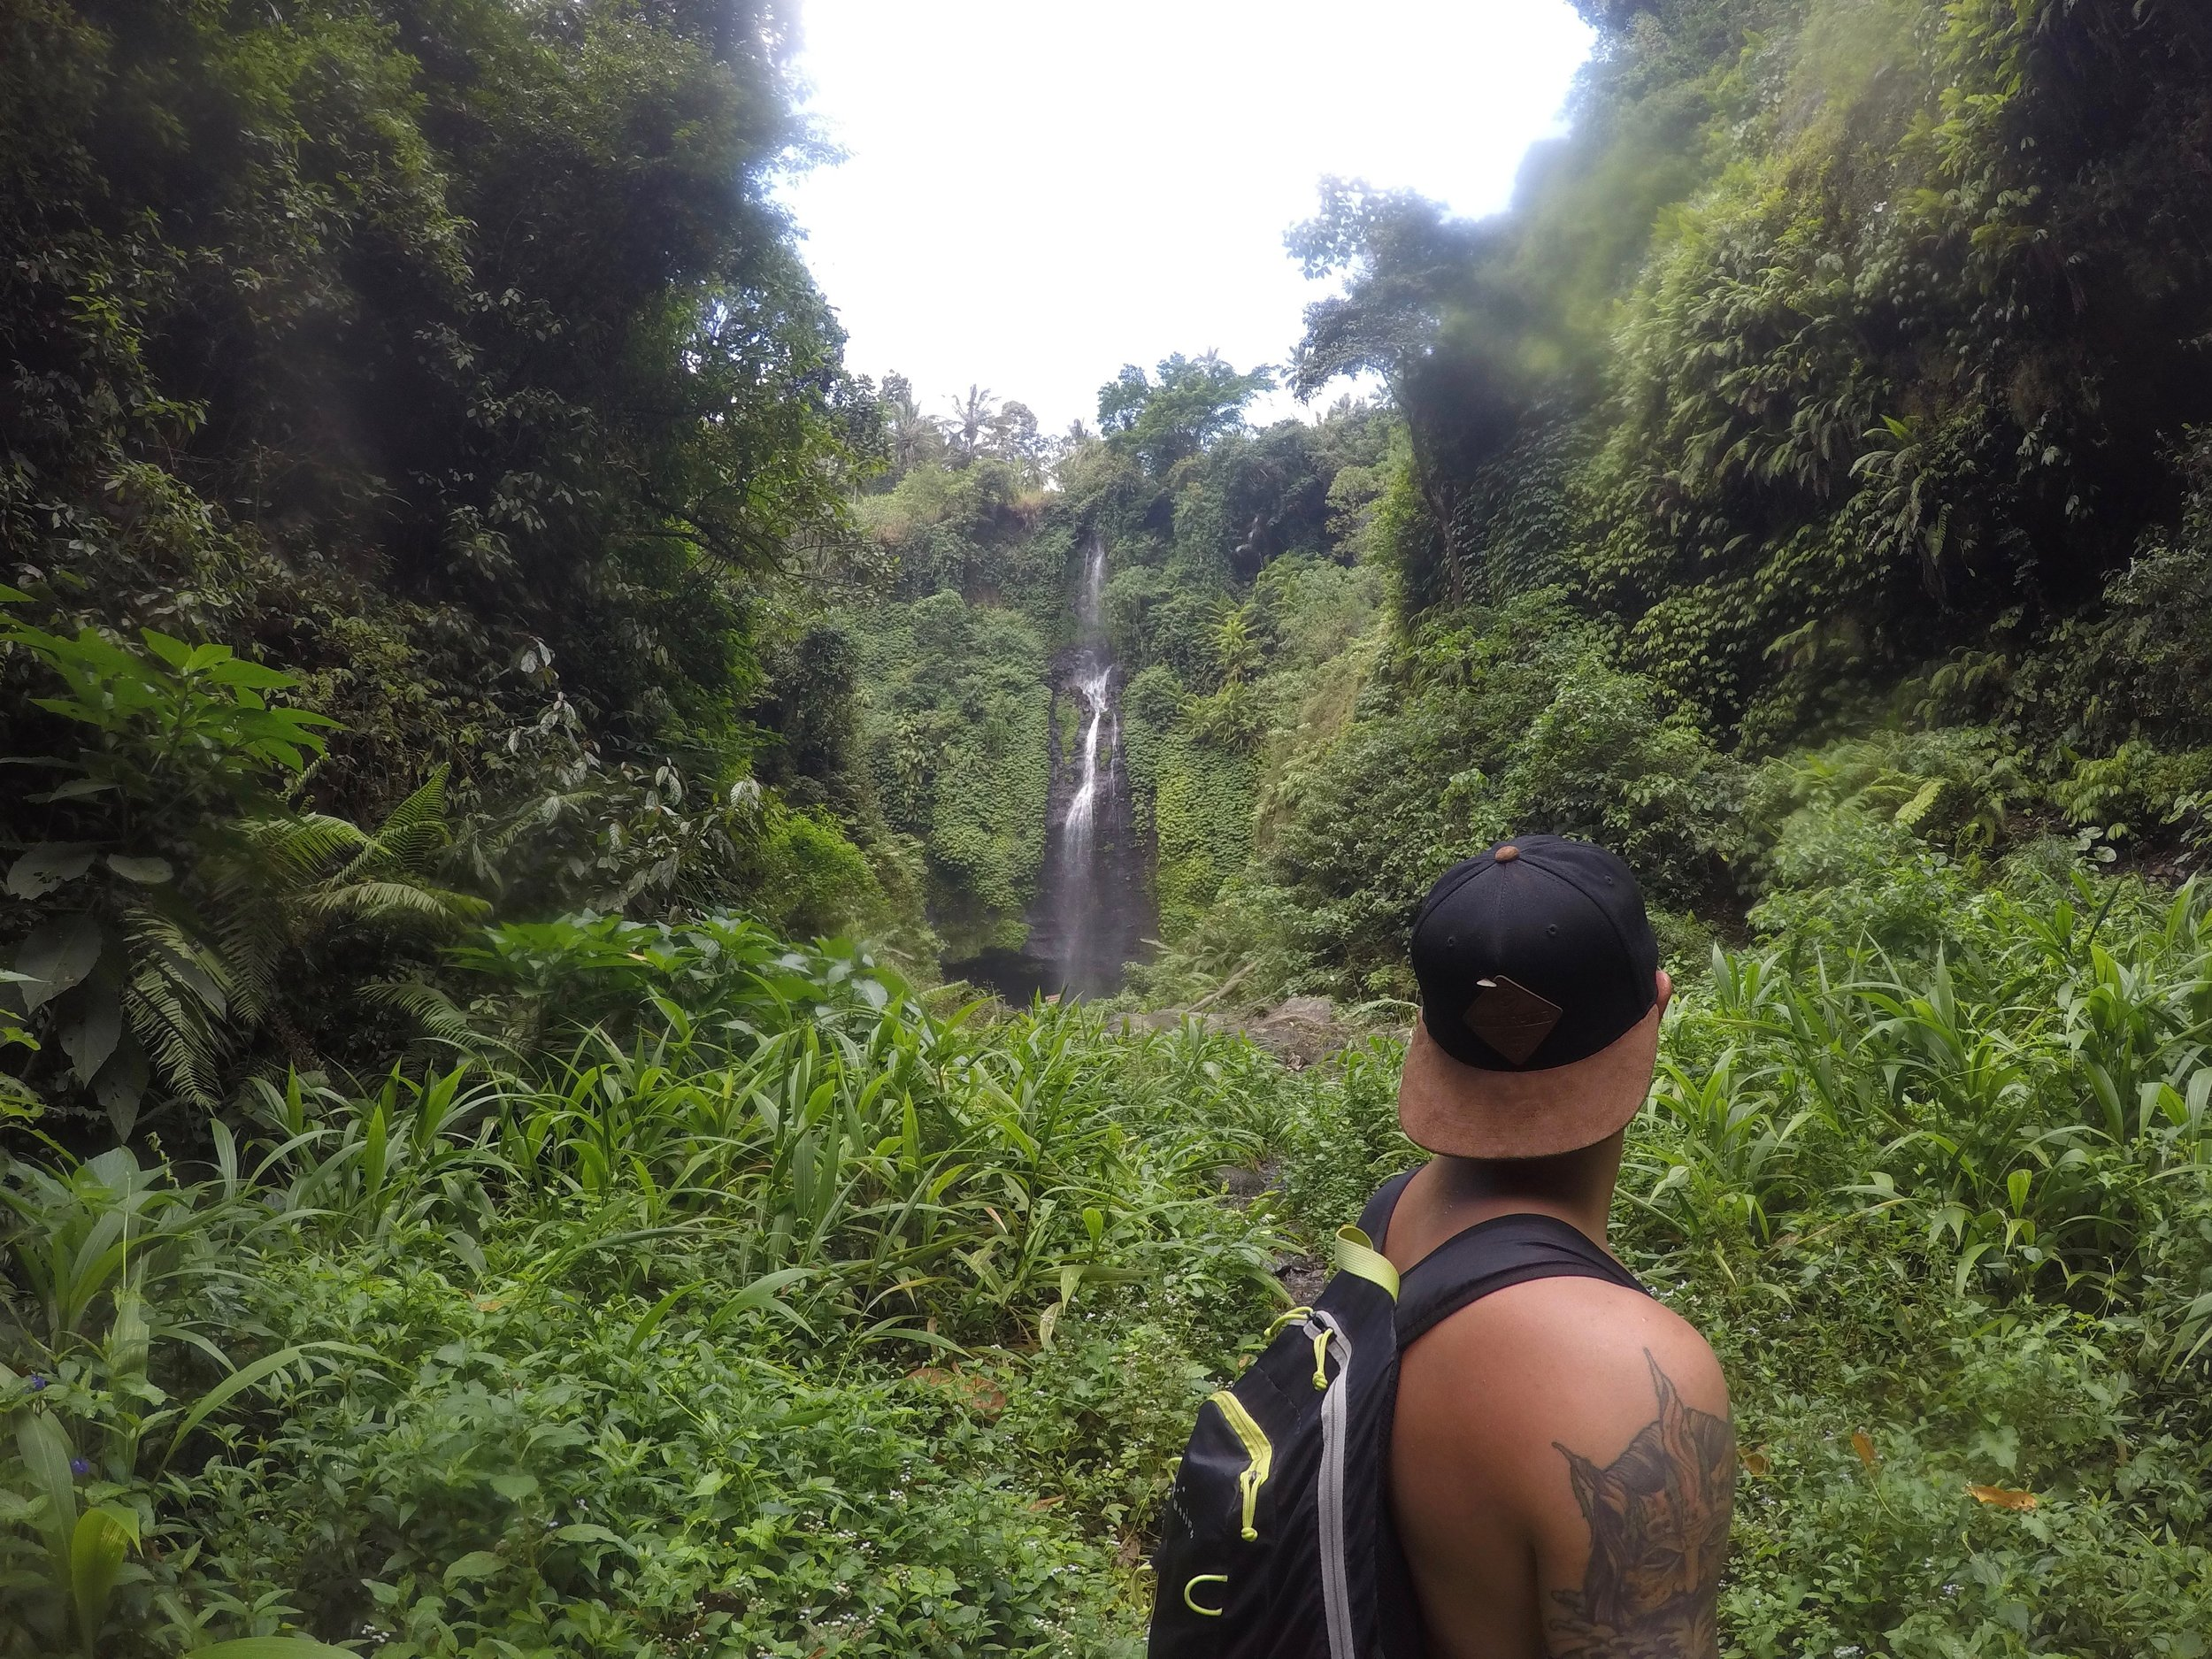 Our first glimpse of one of the waterfalls!